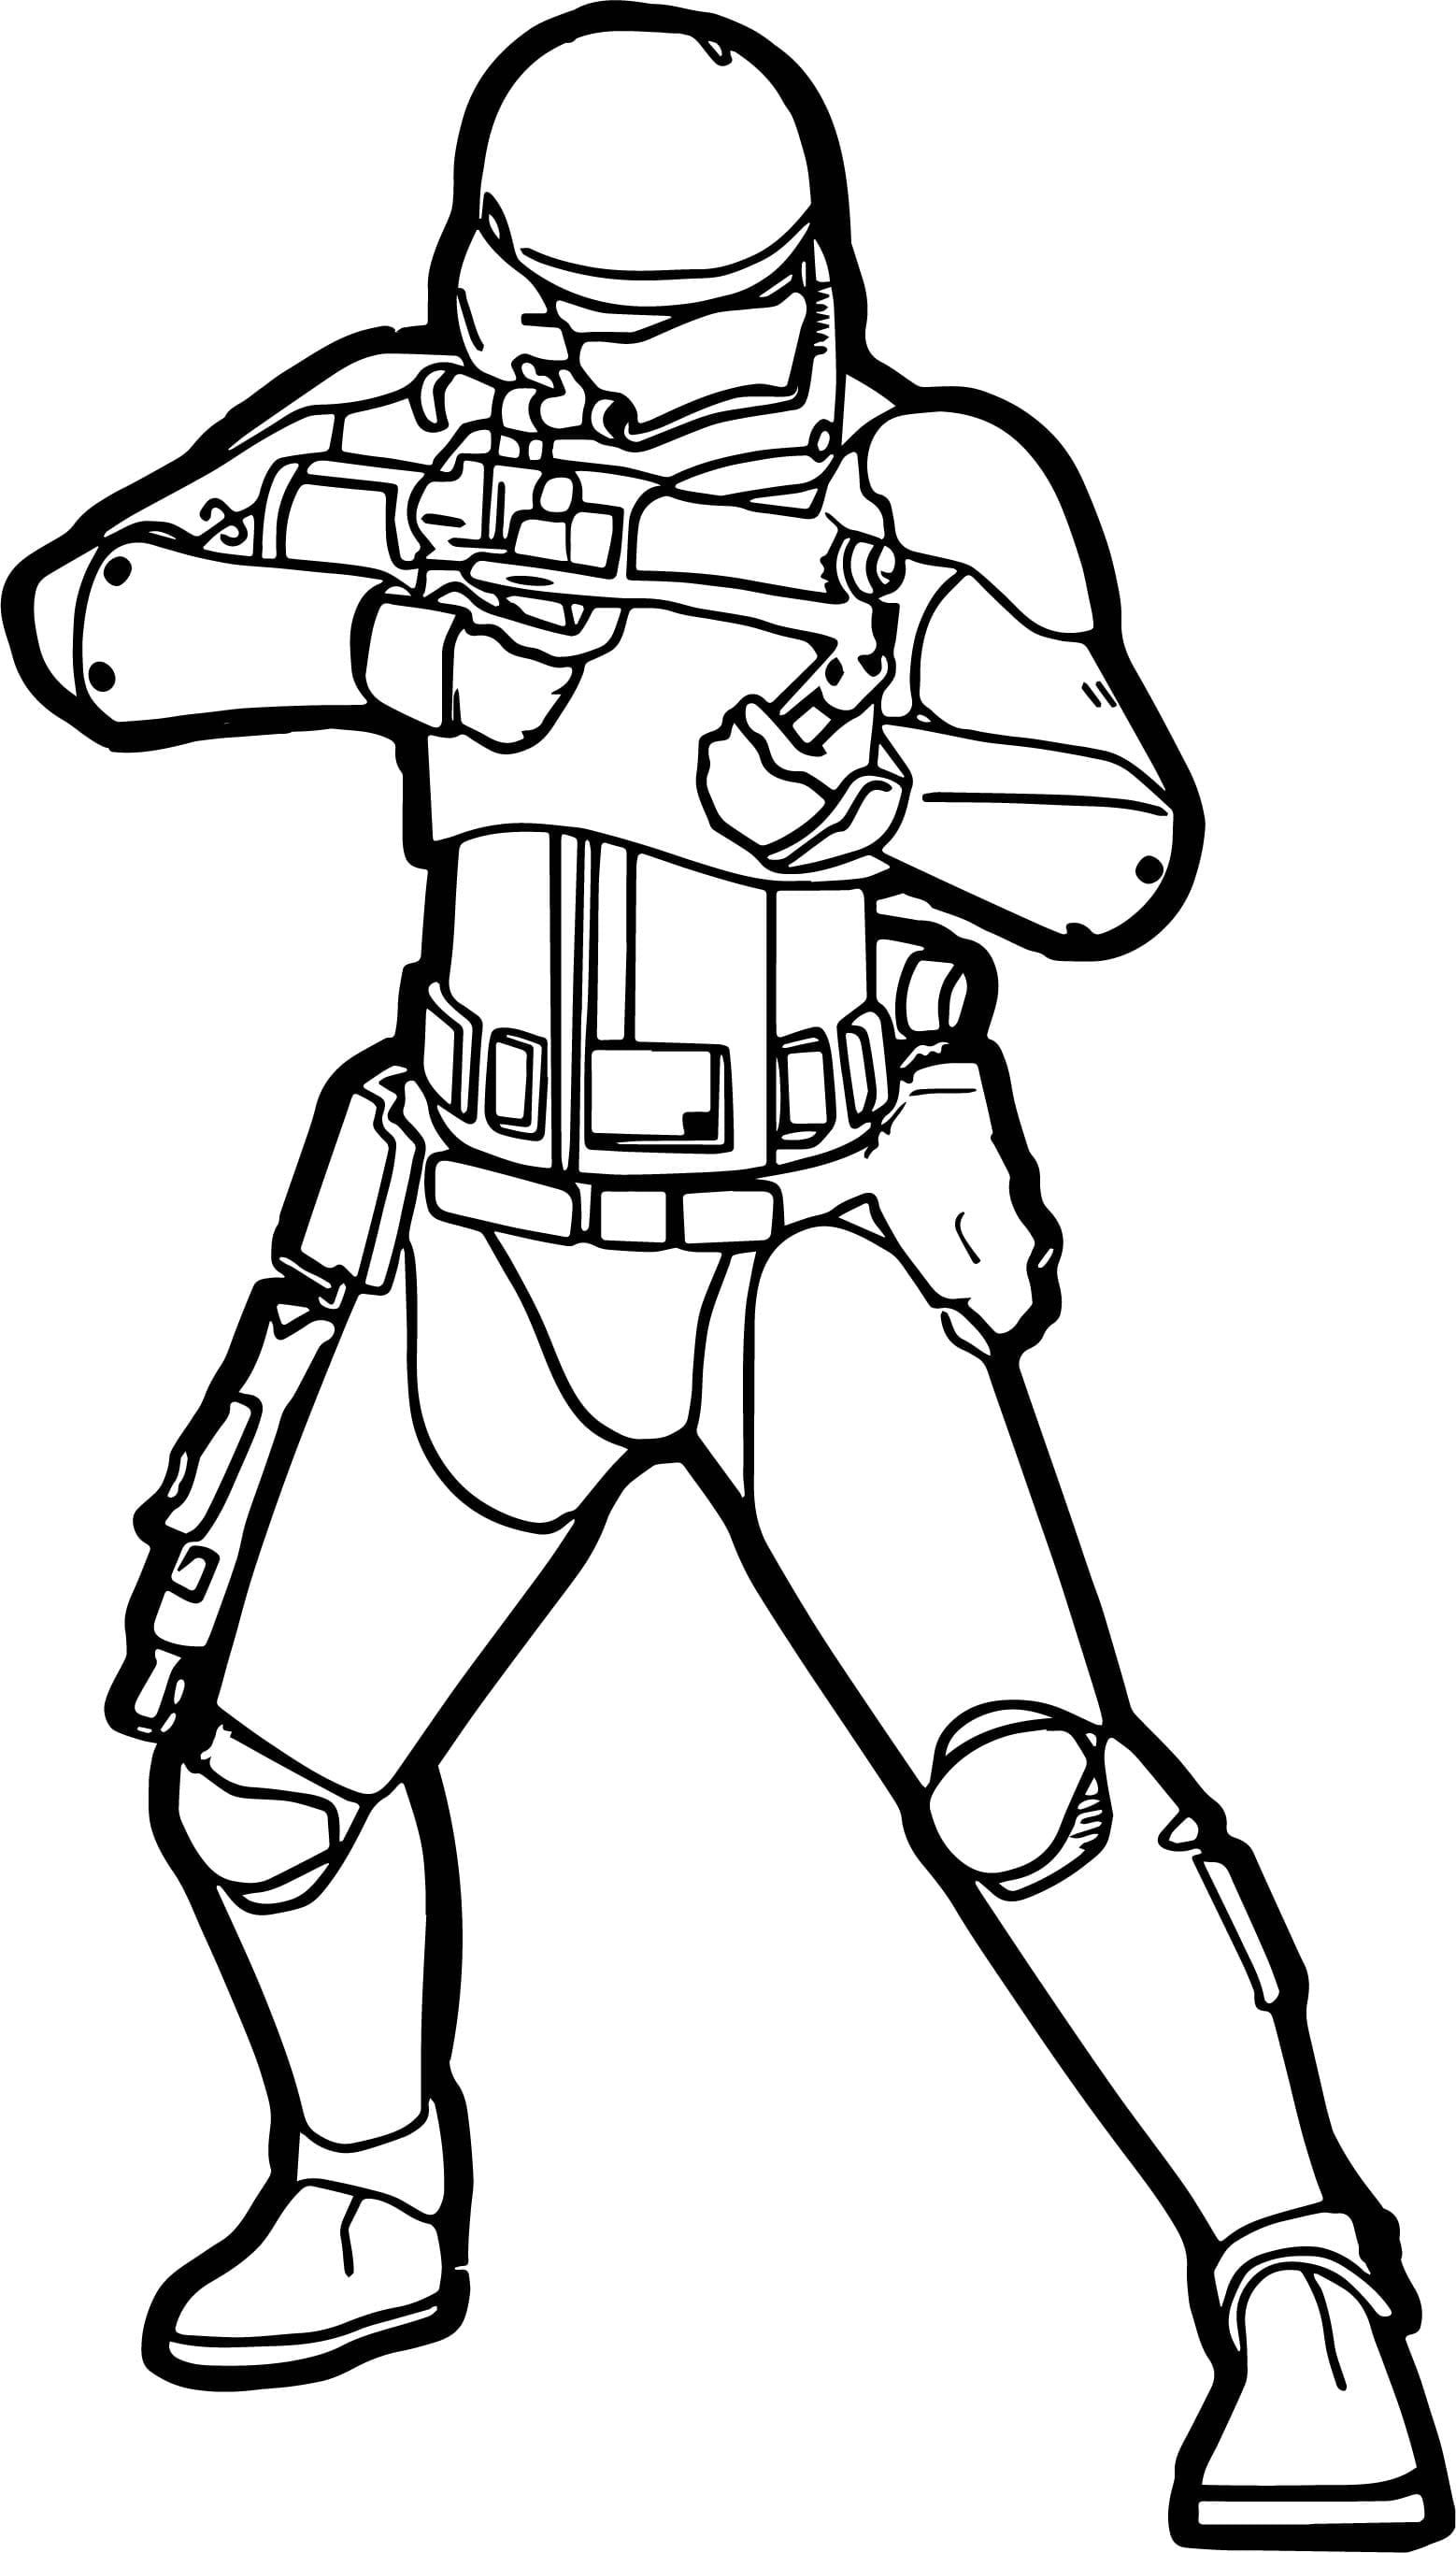 star wars free coloring pages star wars free to color for kids star wars kids coloring free pages star coloring wars